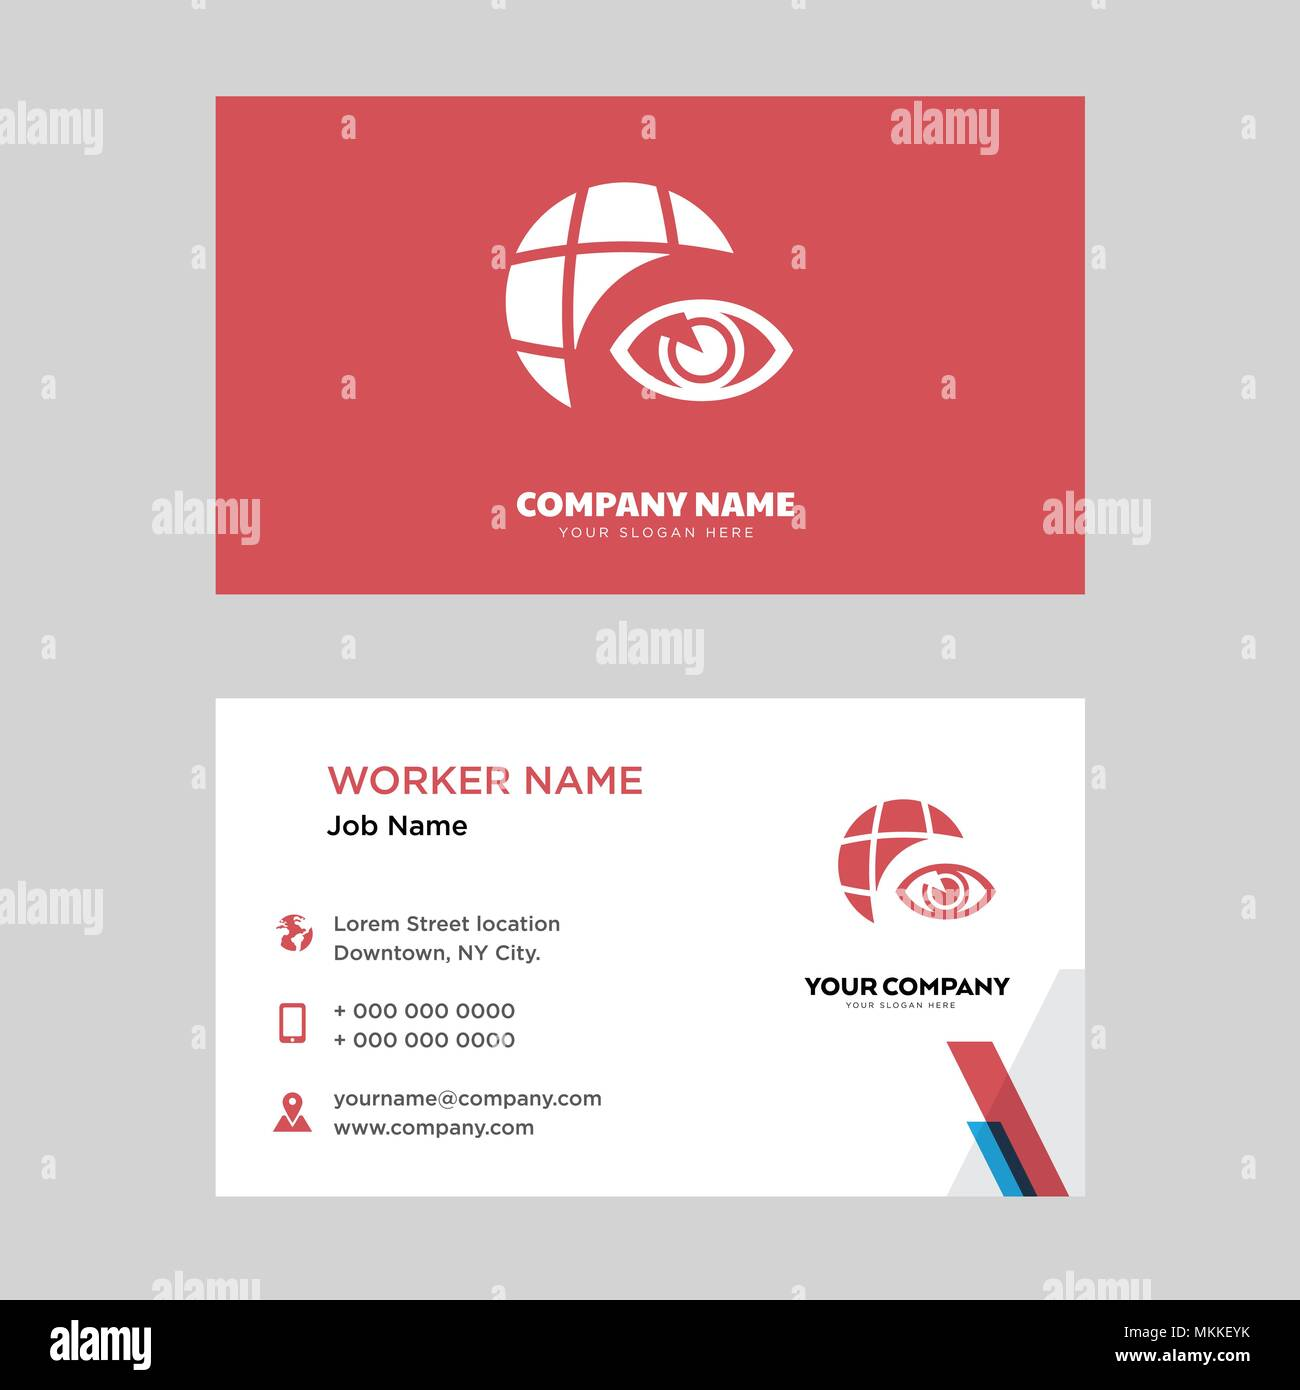 Globe business card design template visiting for your company globe business card design template visiting for your company modern horizontal identity card vector reheart Images